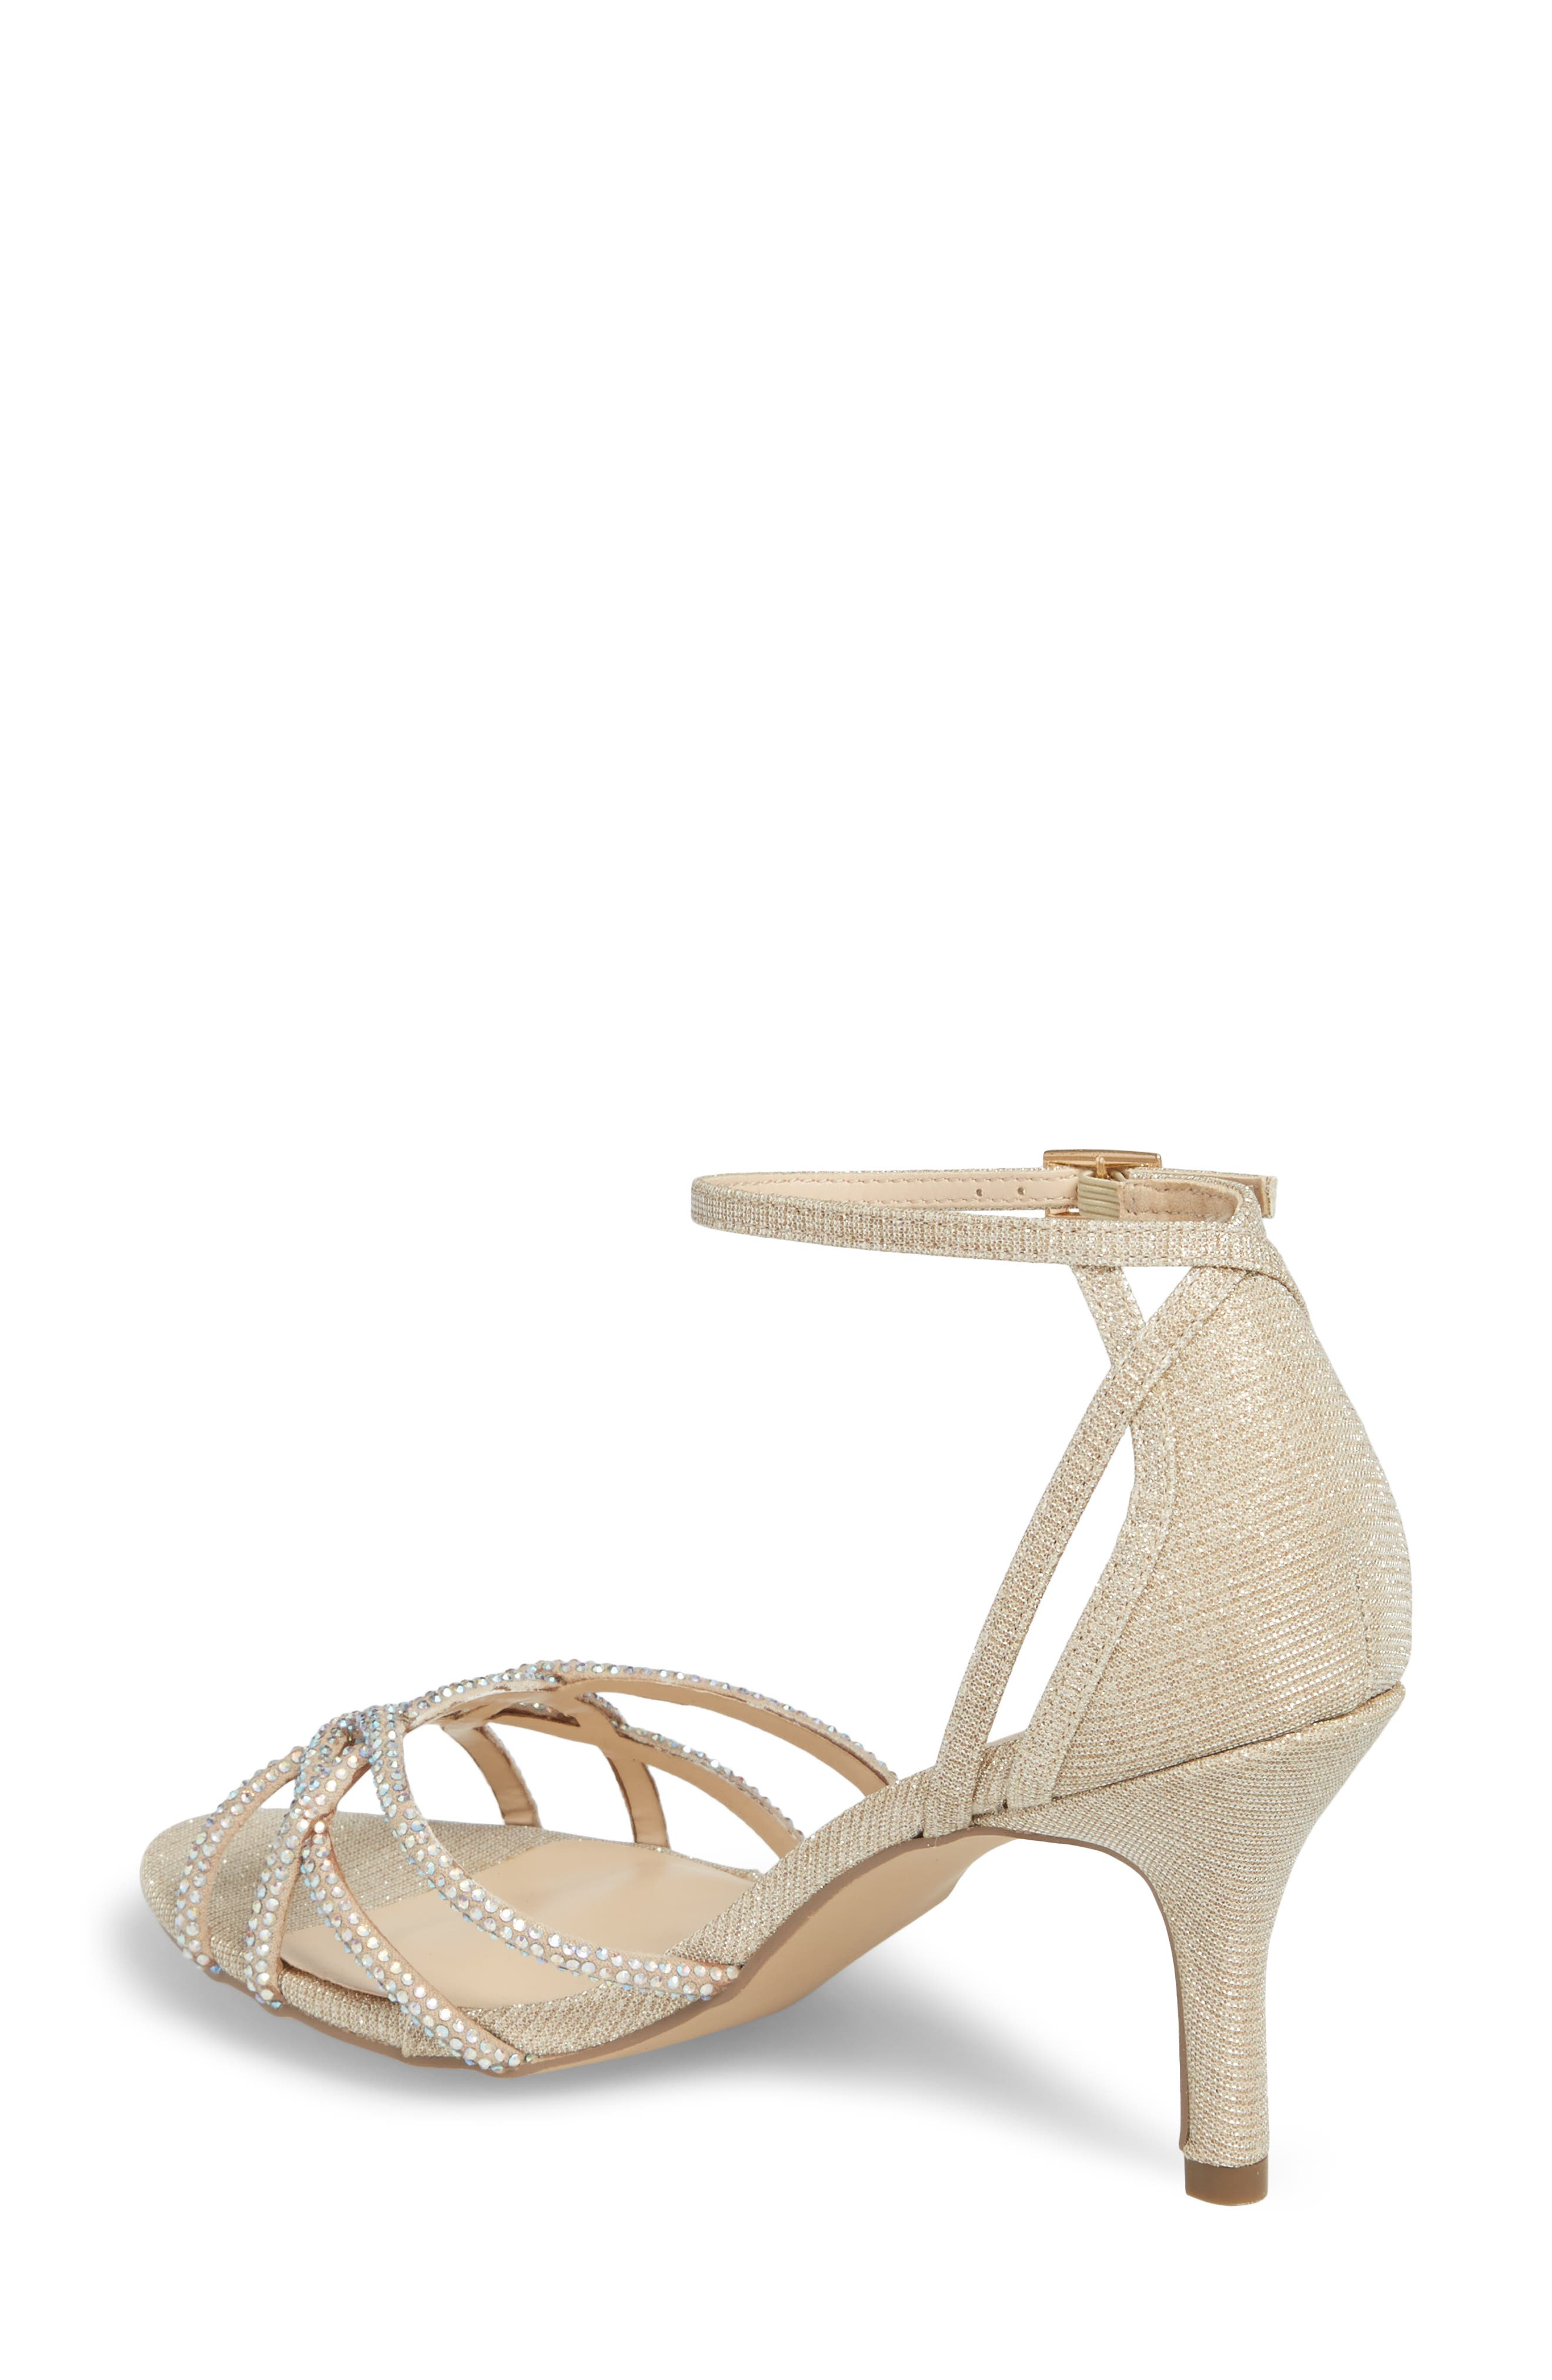 Majesty Sandal,                             Alternate thumbnail 2, color,                             Champagne Fabric